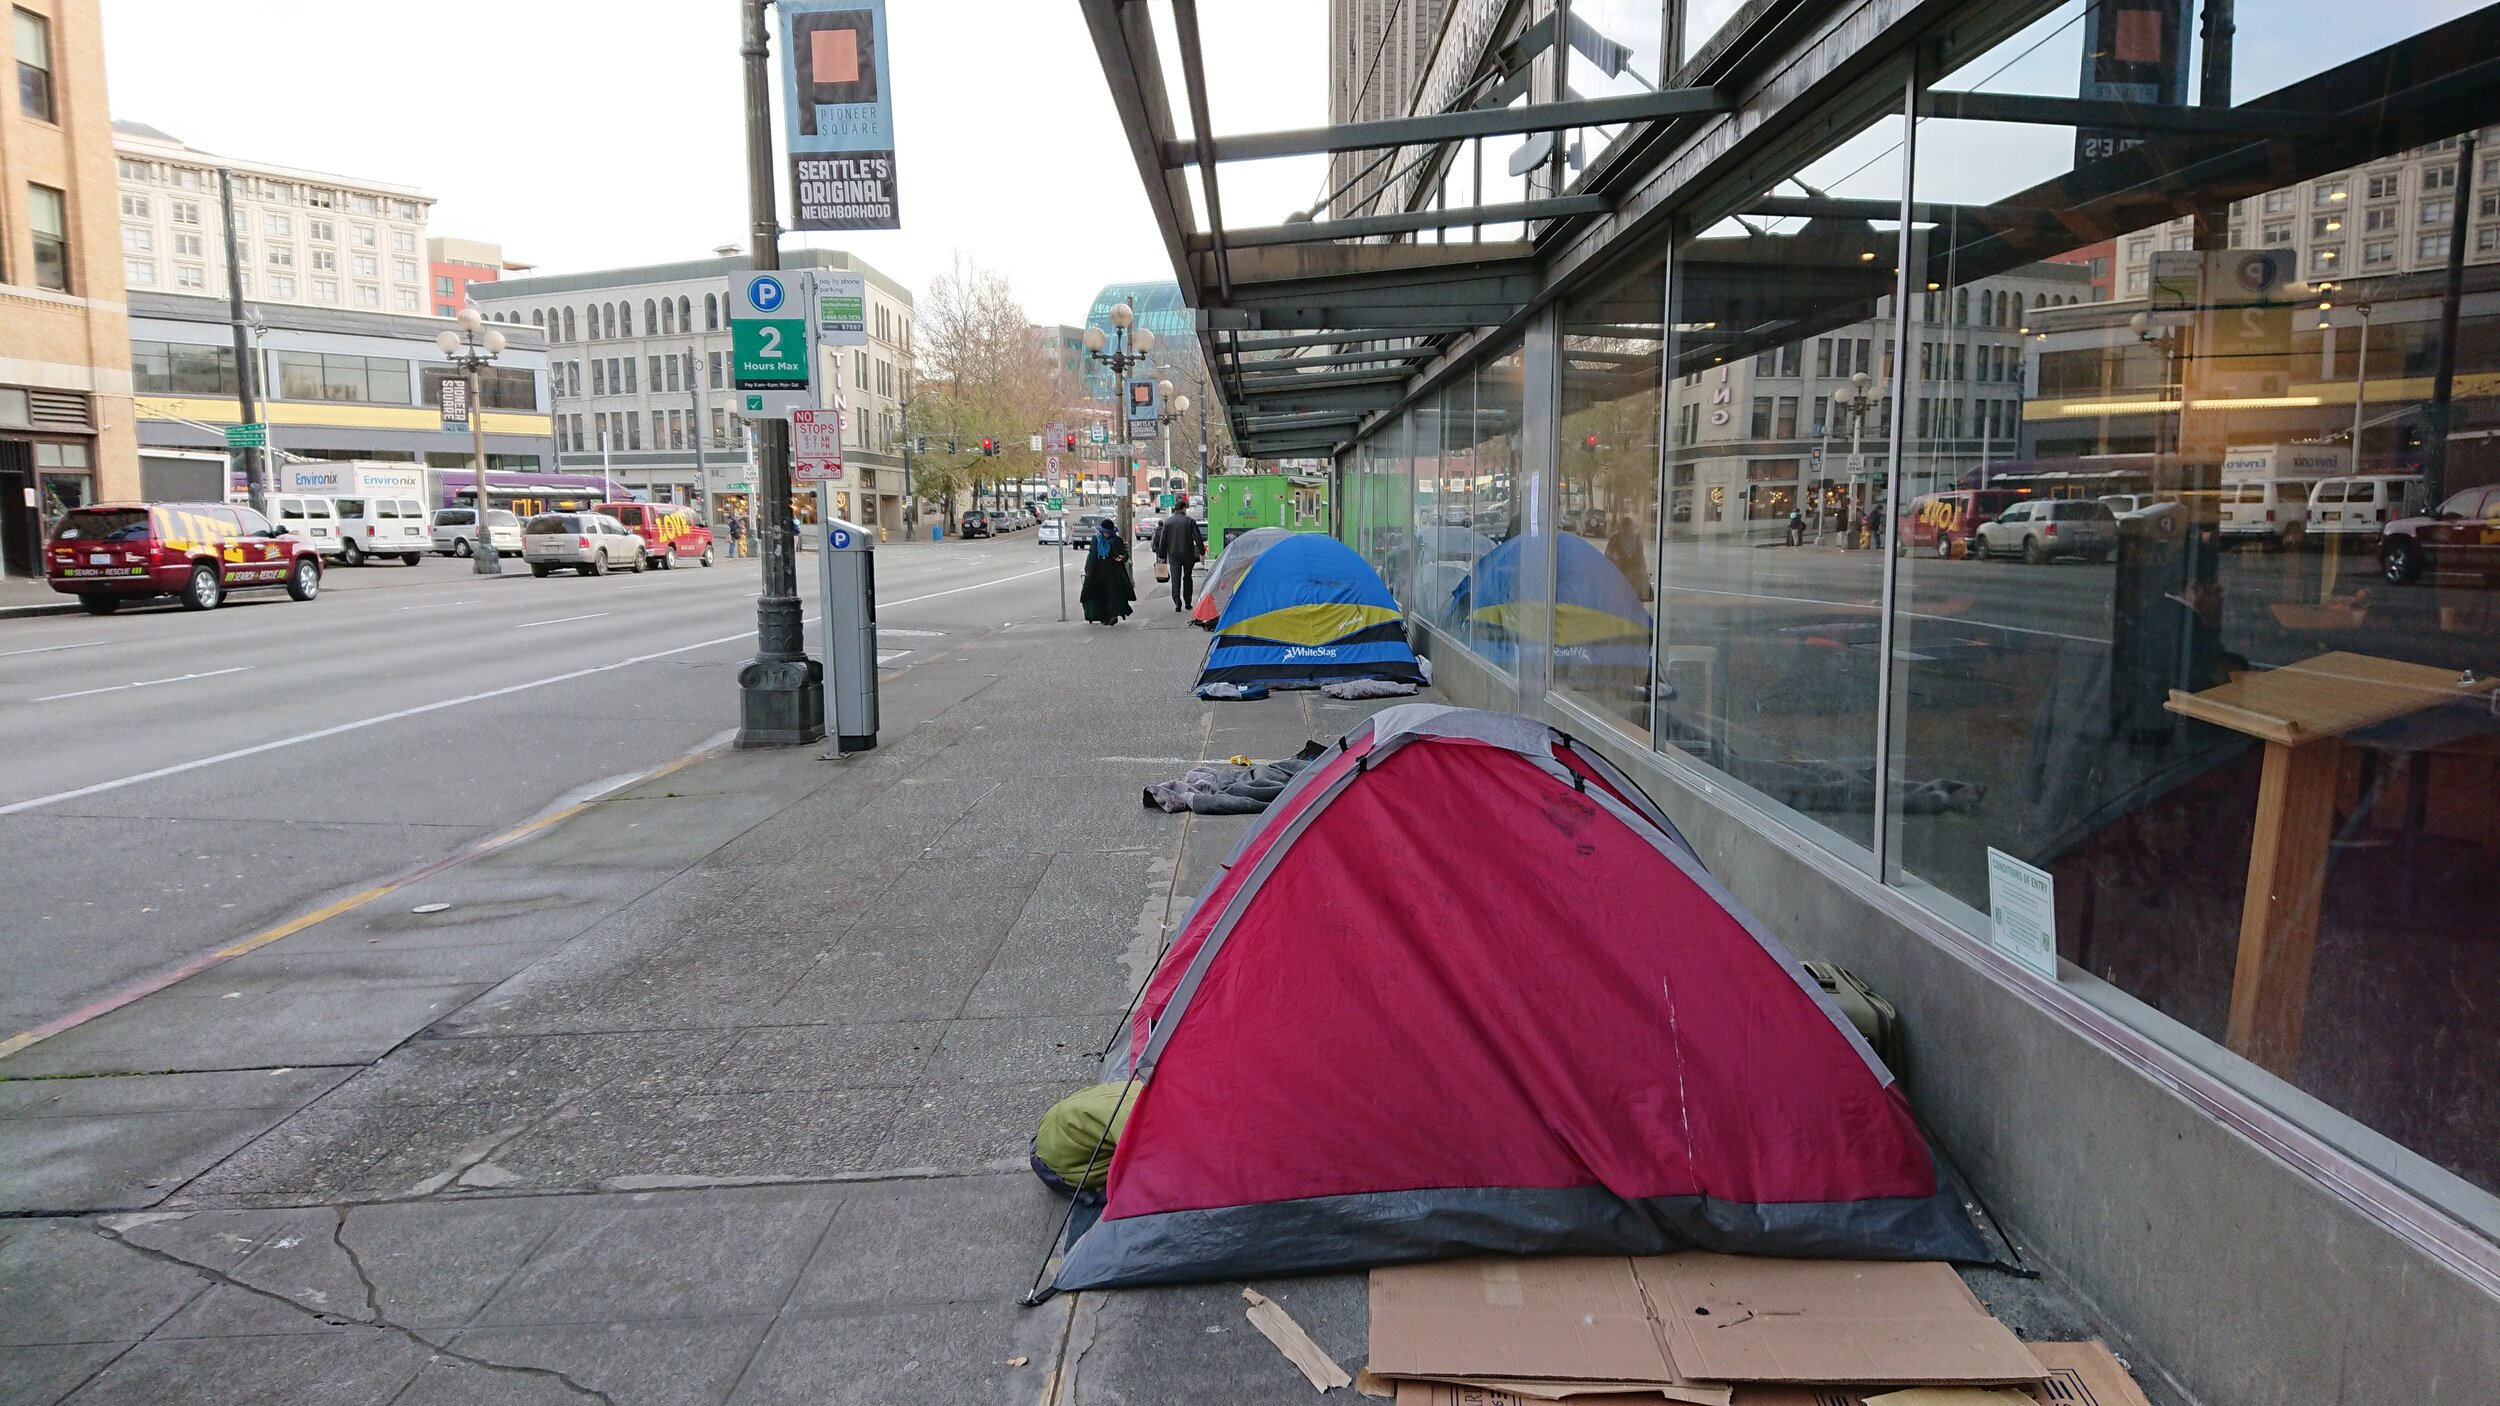 Tents line a sidewalk in Seattle's Pioneer Square neighborhood.  In 2020 Washington state experienced a 20 percent increase in homelessness among families with children. File photo.